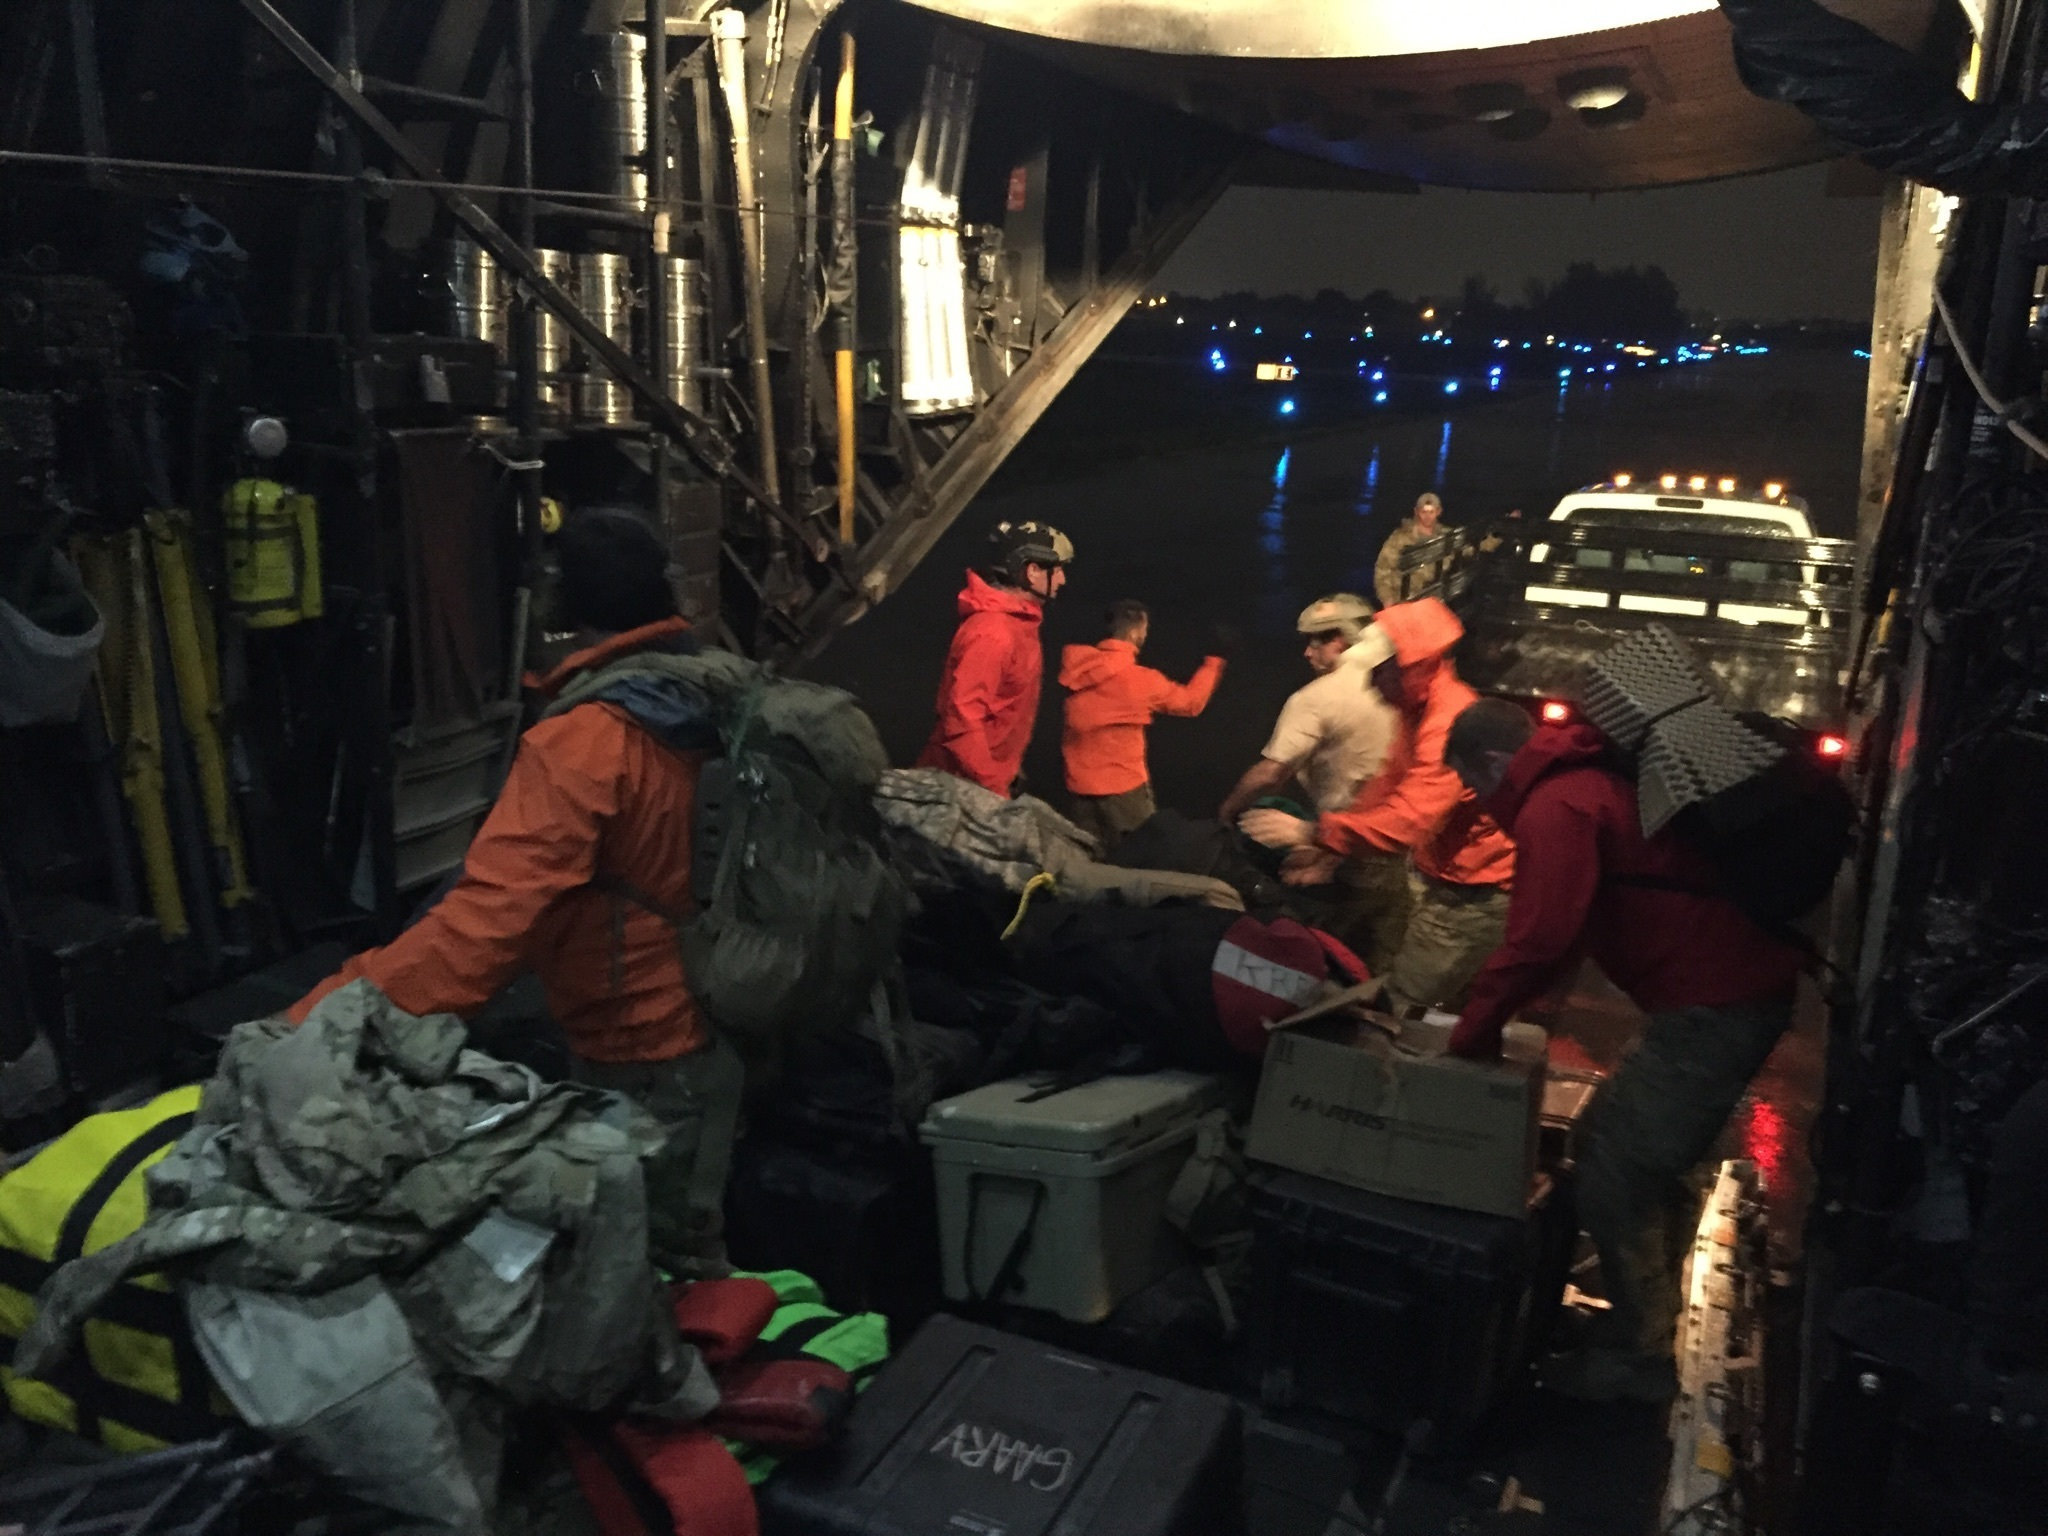 U.S. Air Force Guardian Angel pararescuemen from the 121st Rescue Squadron, Alaska Air National Guard, unload their equipment from an MC130P Combat Shadow aircraft assigned with the 129th Rescue Wing, California Air National Guard at Miami Opa Locka Executive Airport, Fla., as Hurricane Irma approaches Sept. 9, 2017. The Guardian Angel team are prepositioning themselves and staging equipment 20 miles outside of Miami in a safety bunker rated for a Category 5 hurricane in order to have immediate capability once the storm passes to begin personnel recovery operations. (Tech. Sgt. Joseph Prouse/Air National Guard)